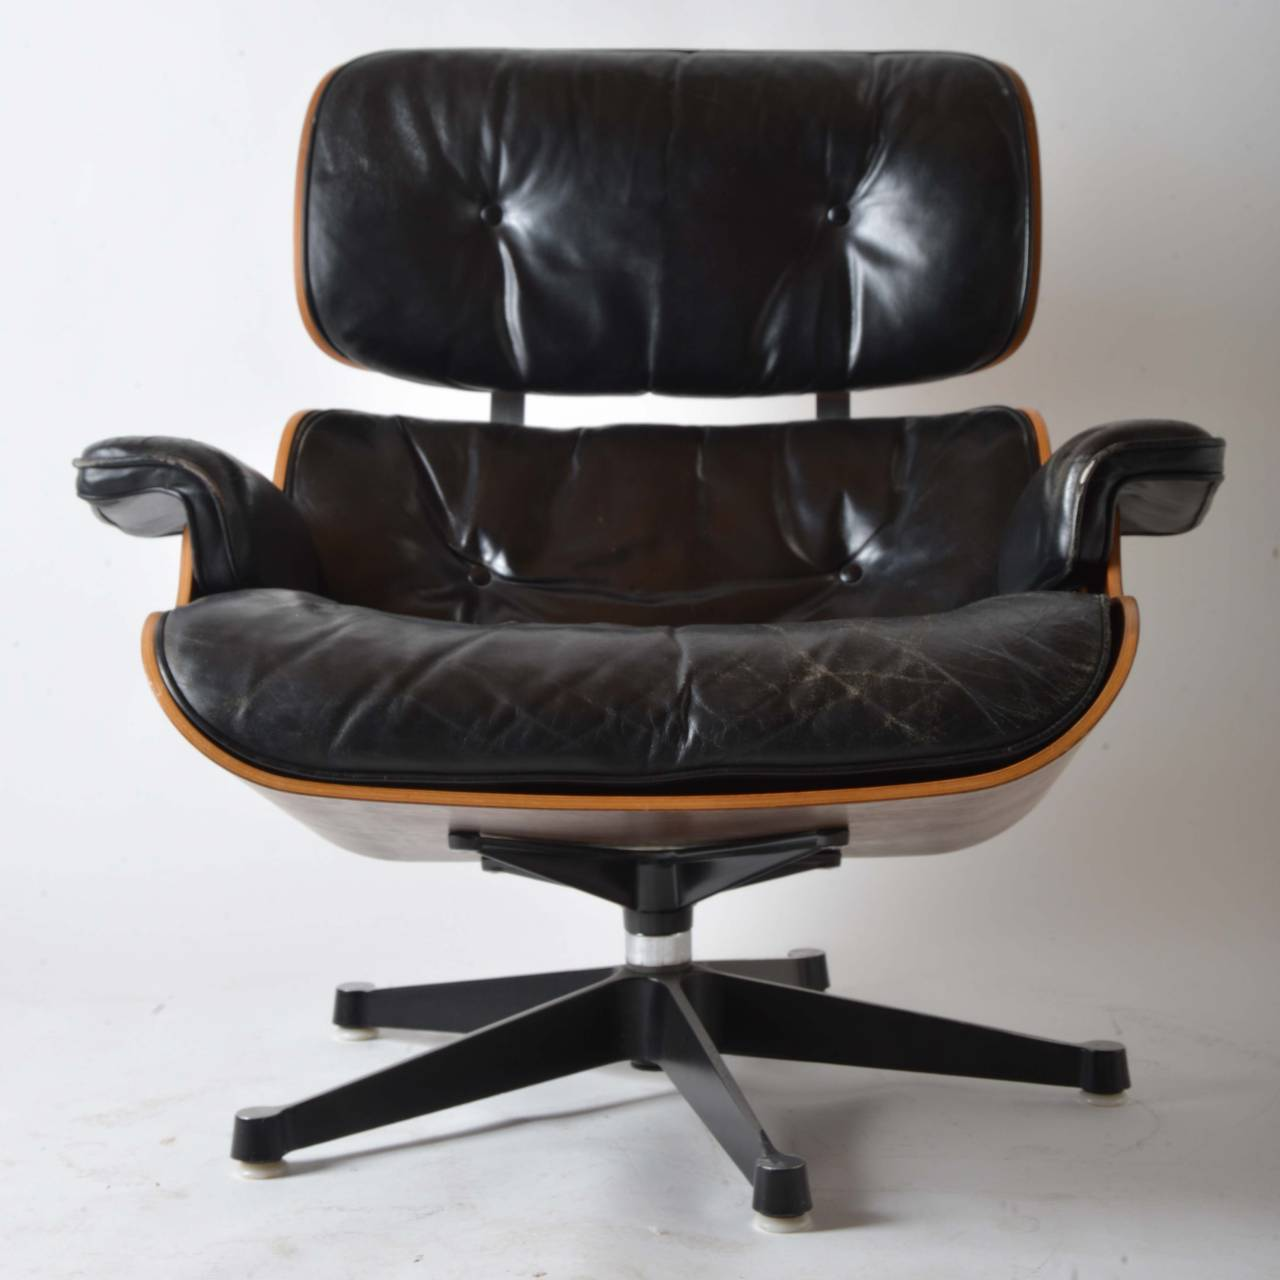 eames lounge chair for sale home depot folding chairs iconic herman miller at